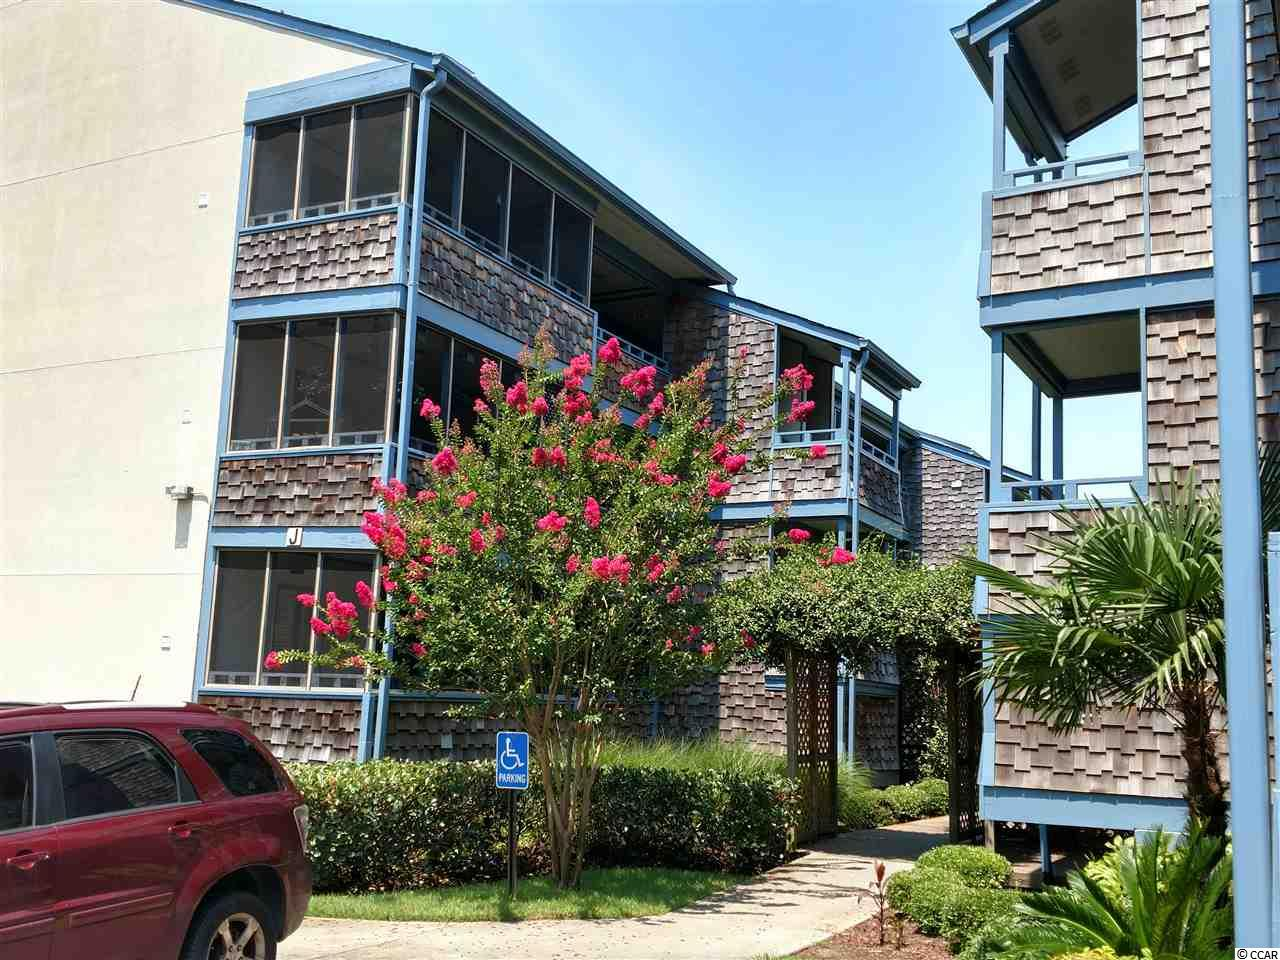 Beach décor and move in ready, beautiful tiled flooring walks you into a Great opportunity to own a spacious open floor plan two bedroom, two bath condo in close walking distance to the beach.  Third floor- woodsy private view from either an open balcony or screened in porch.  Fully furnished and inviting, just bring your clothes and a toothbrush.  Each room has its own generous space and the screened in porches just add more.  J building sits beside the indoor pool for a convenient walk over the complex offers a large outdoor pool as well, along with picnic tables and outside grills for some summertime fun.  You are only a short drive or walk to a large variety of restaurants, numerous golf courses, loads of family entertainment and shopping.   Make this your primary home, vacation spot or investment